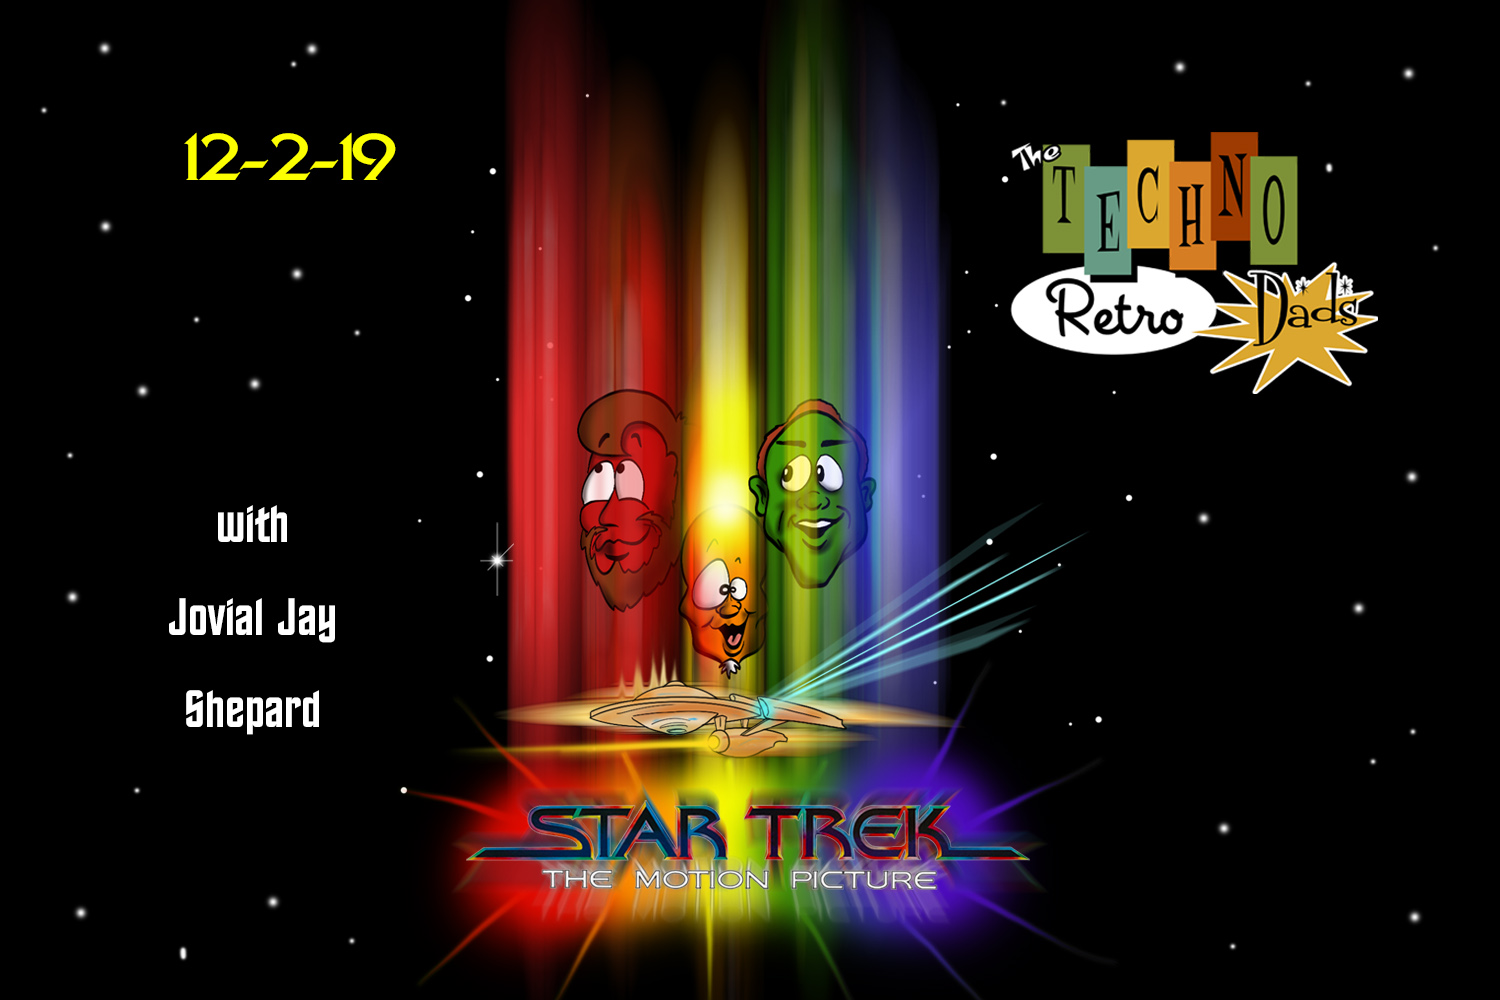 40 Years of Star Trek: The Motion Picture on TechnoRetro Dads